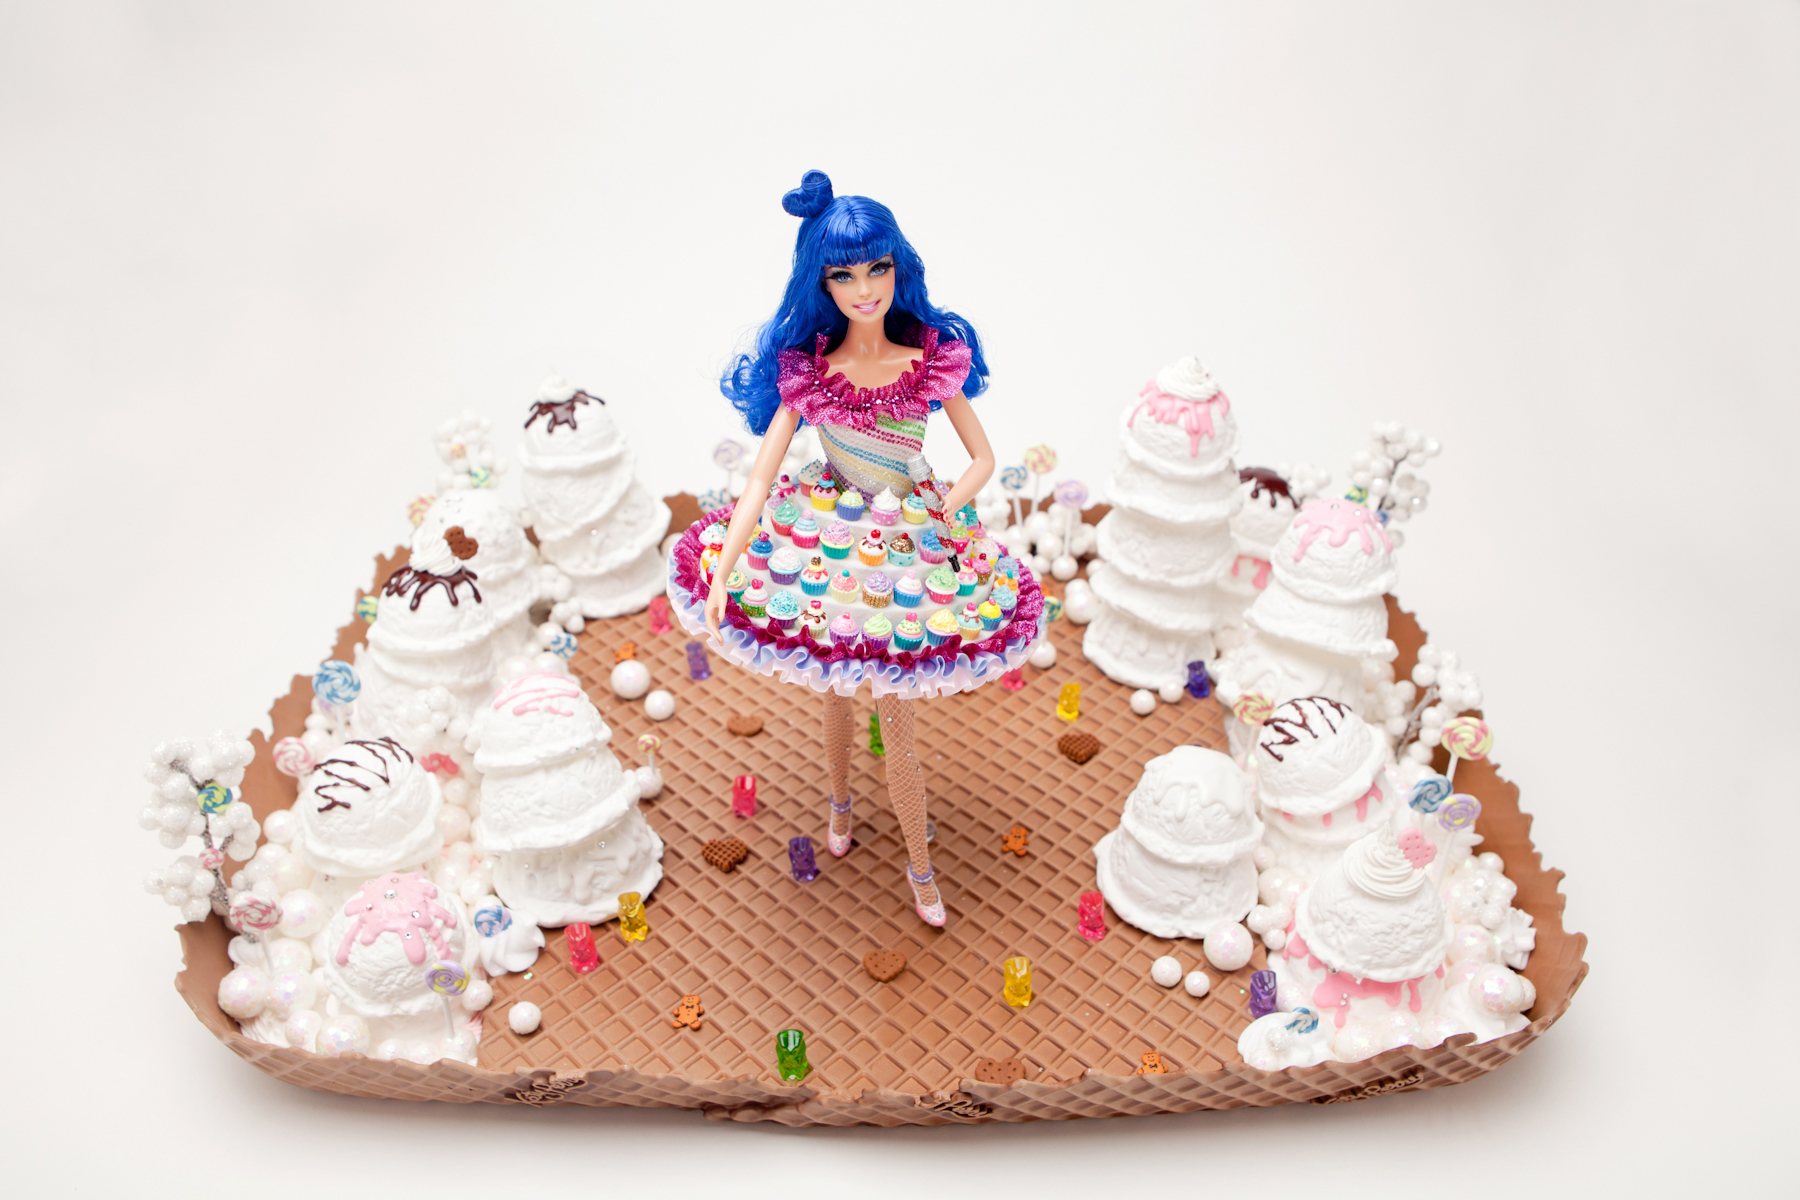 The Katy Perry Barbie, released in 2011.